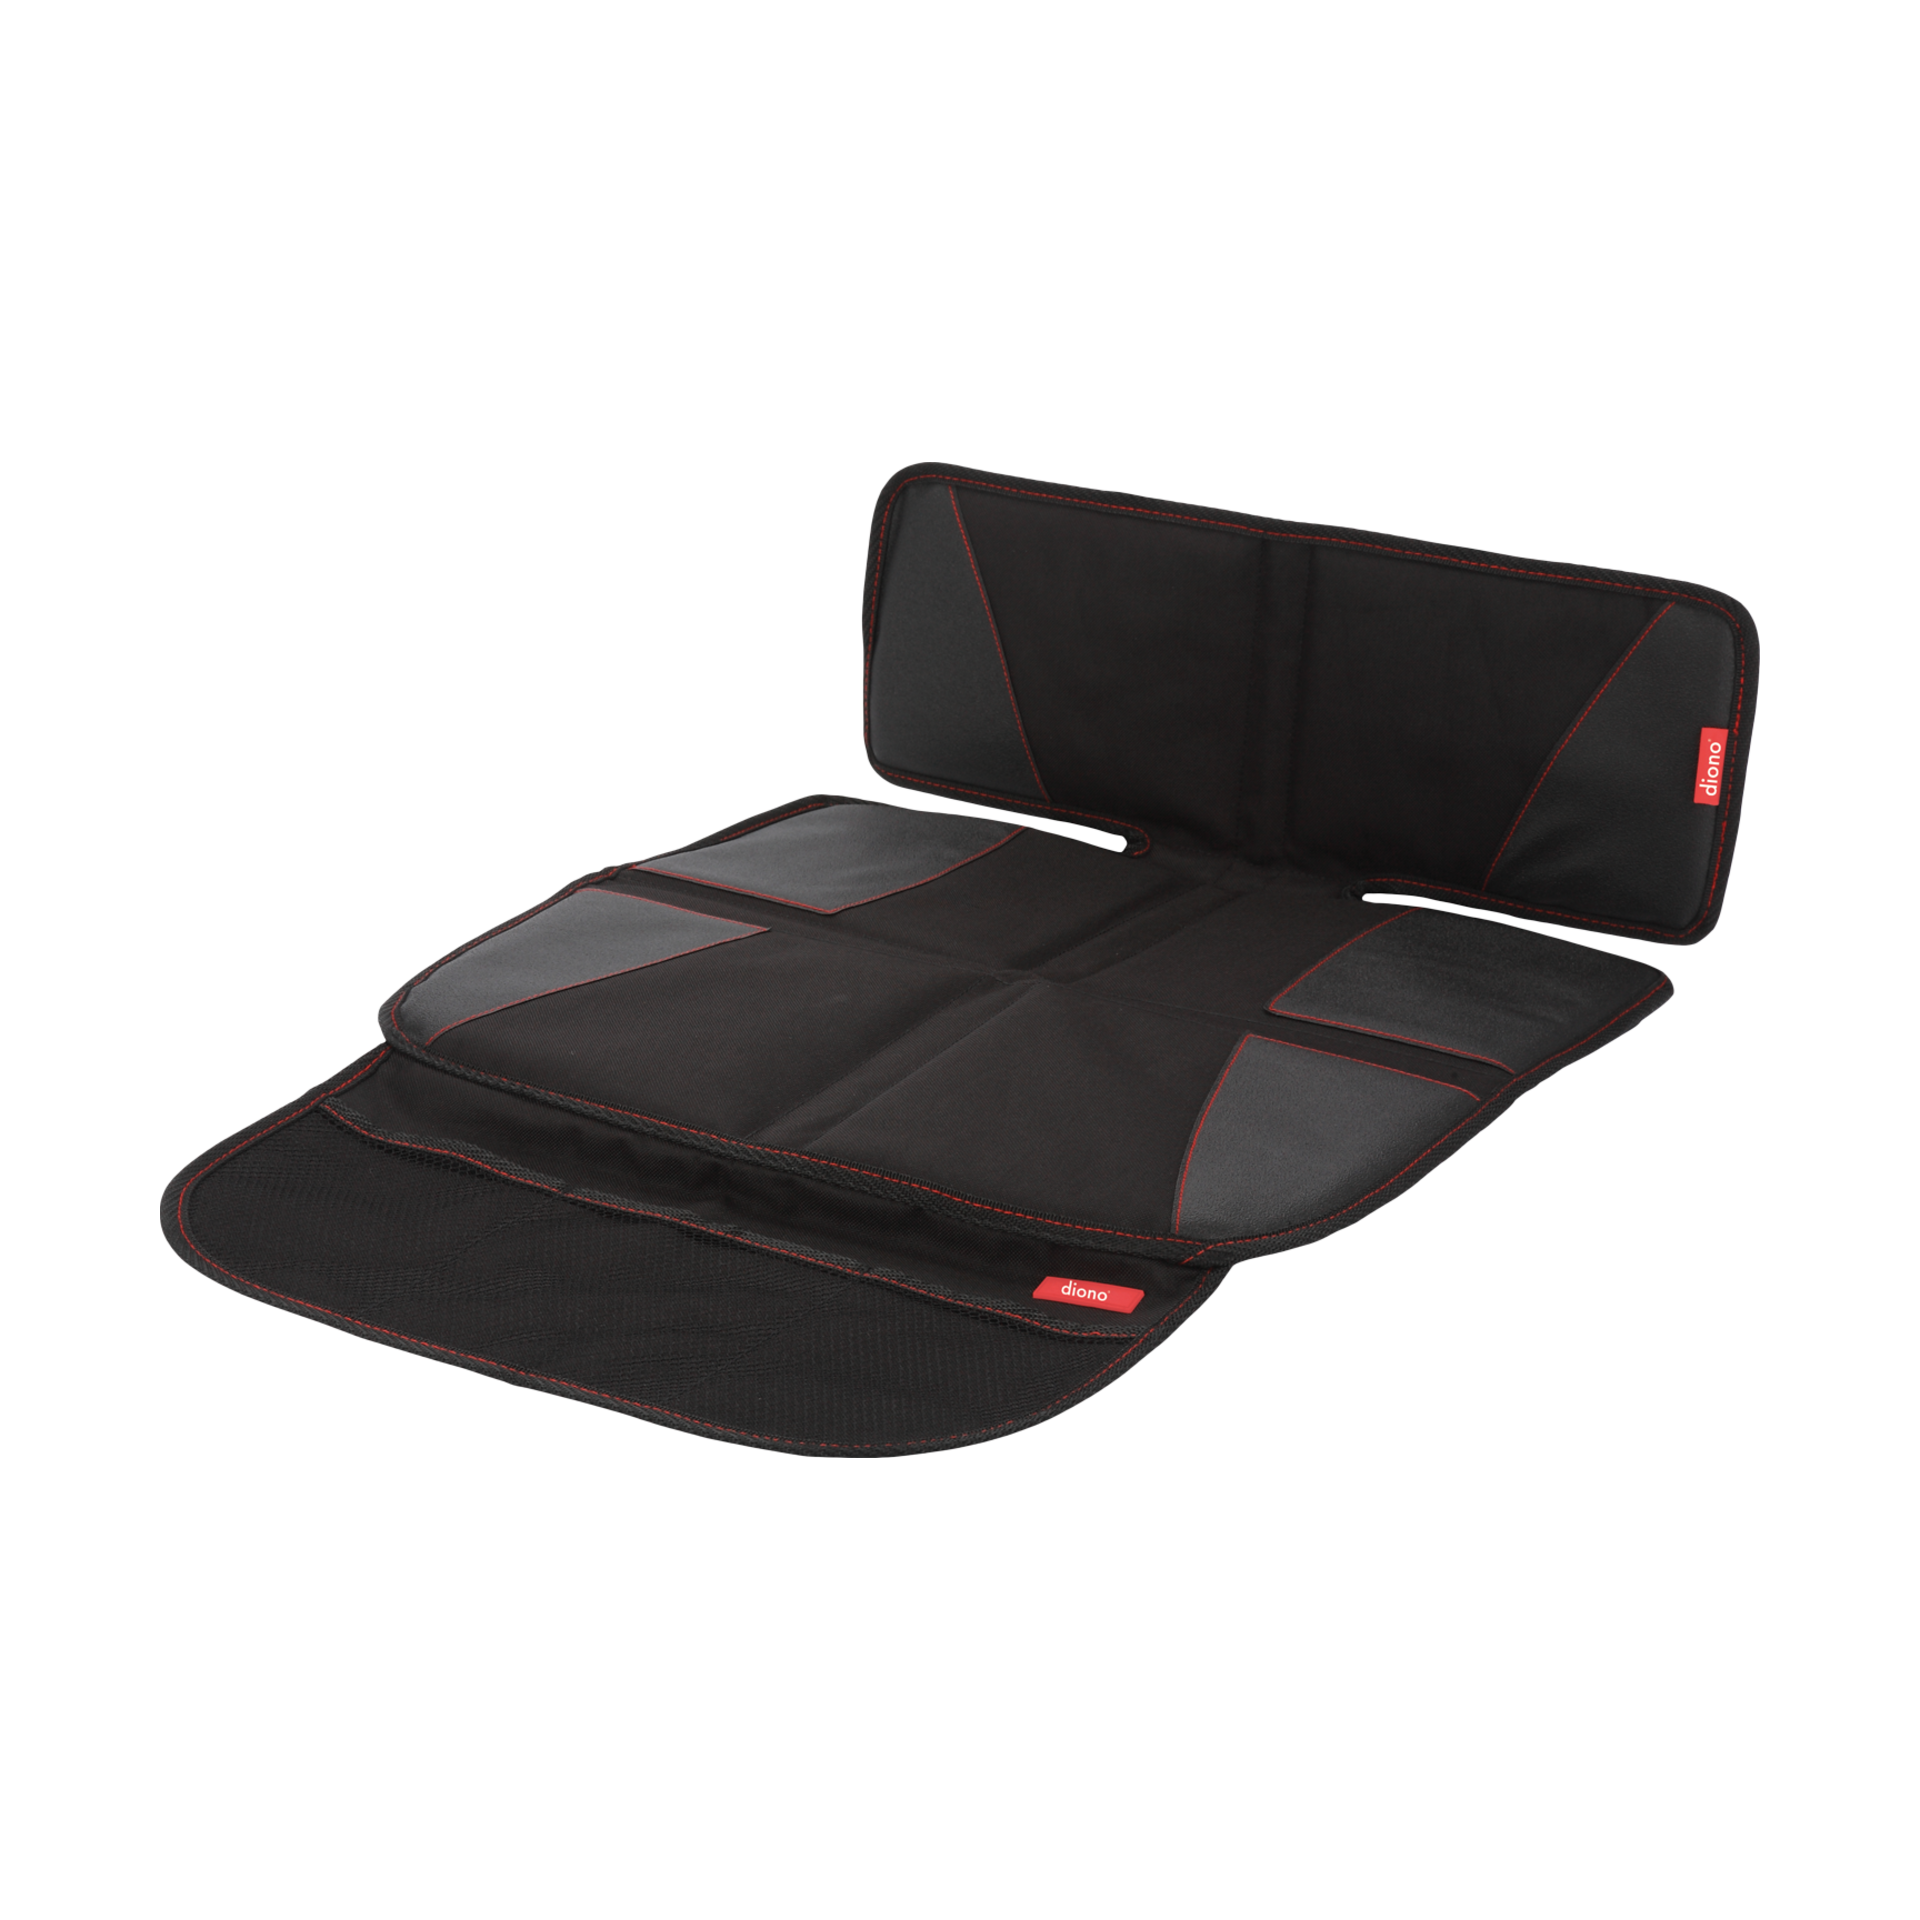 Diono Ultra Mat Full-Size Seat Protector Black New Free Shipping